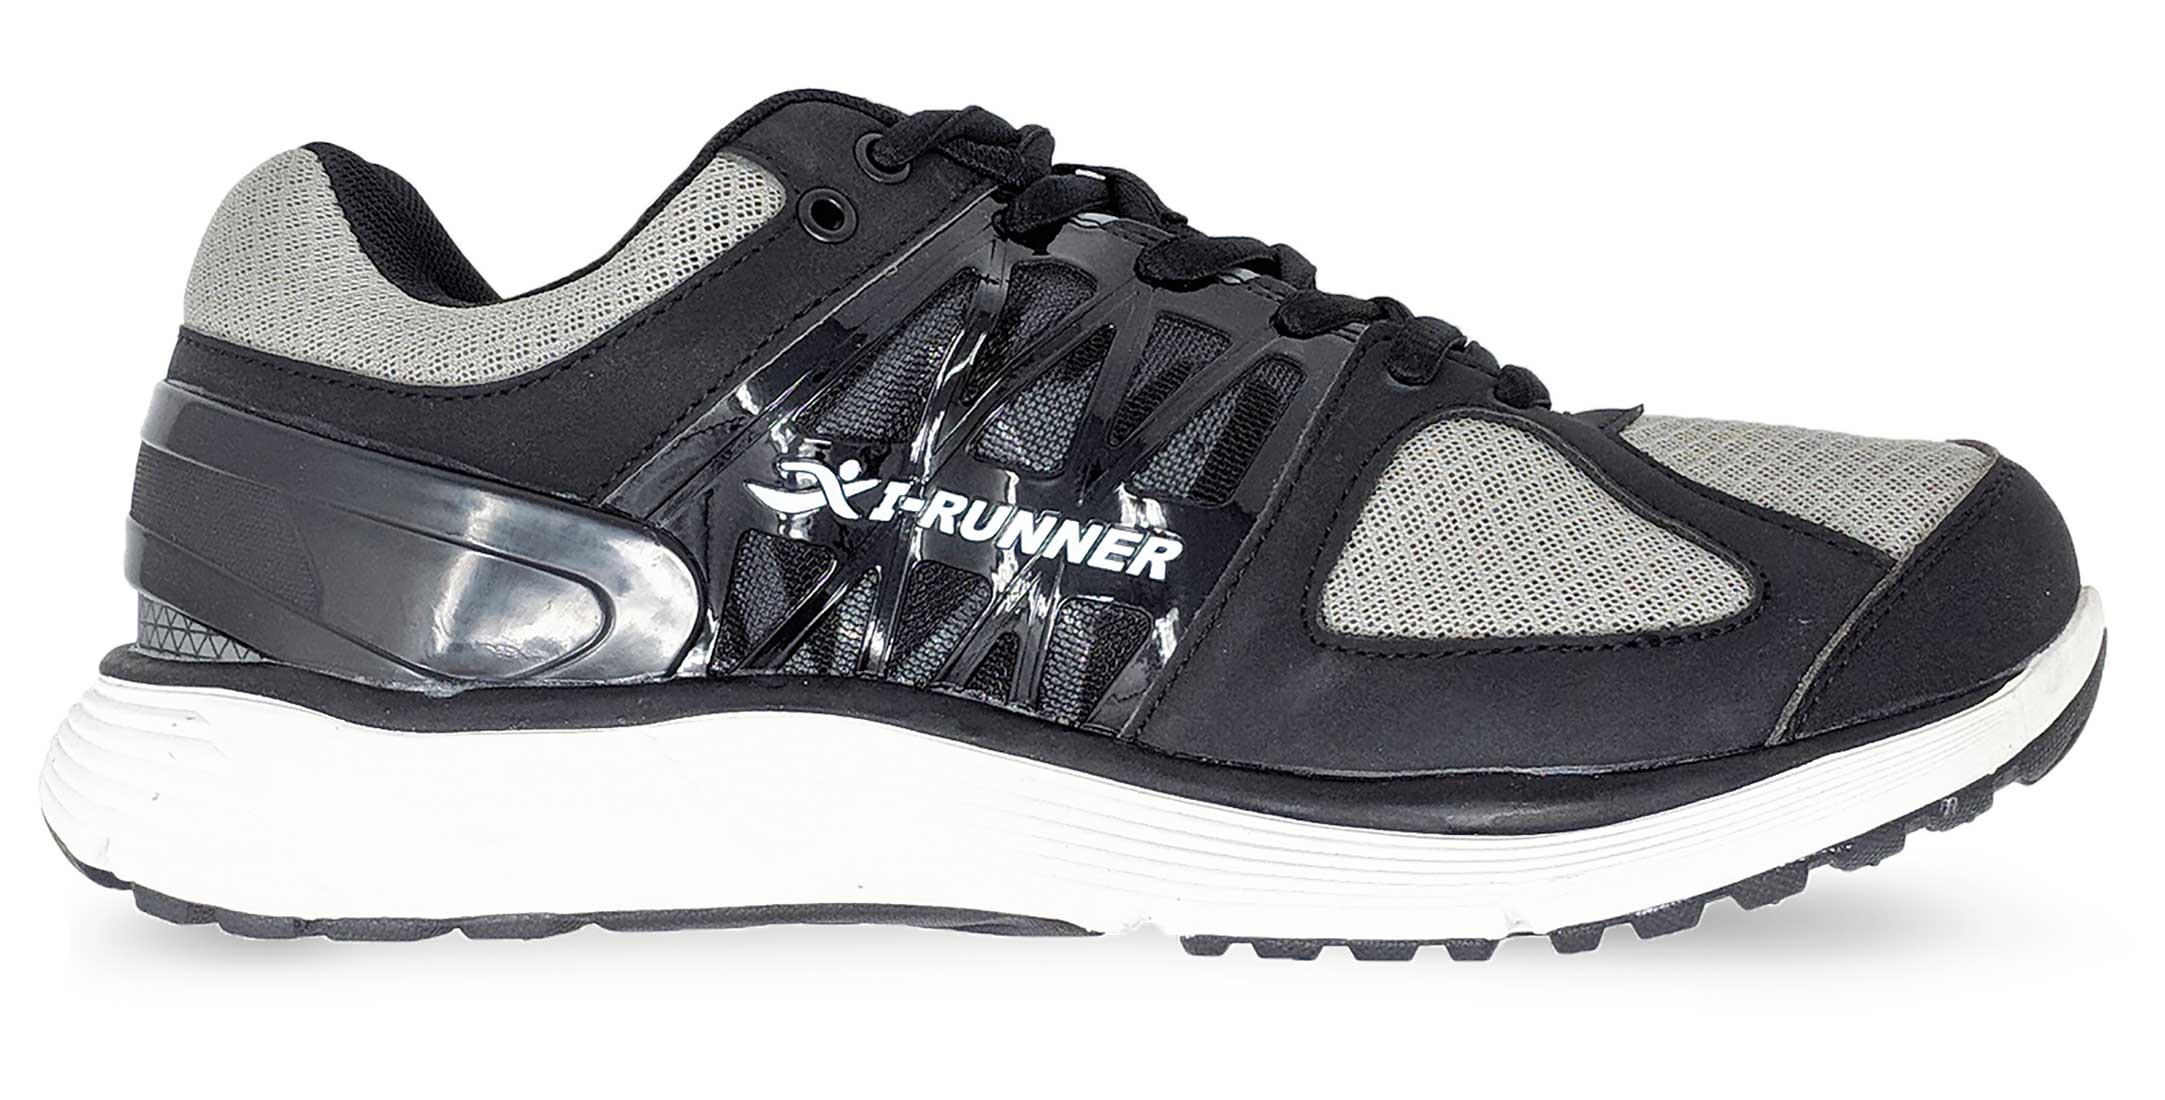 I-RUNNER - Athletic Walker - Extremely Comfortable, Therapeutic,  Orthopedic, and Diabetic Shoe